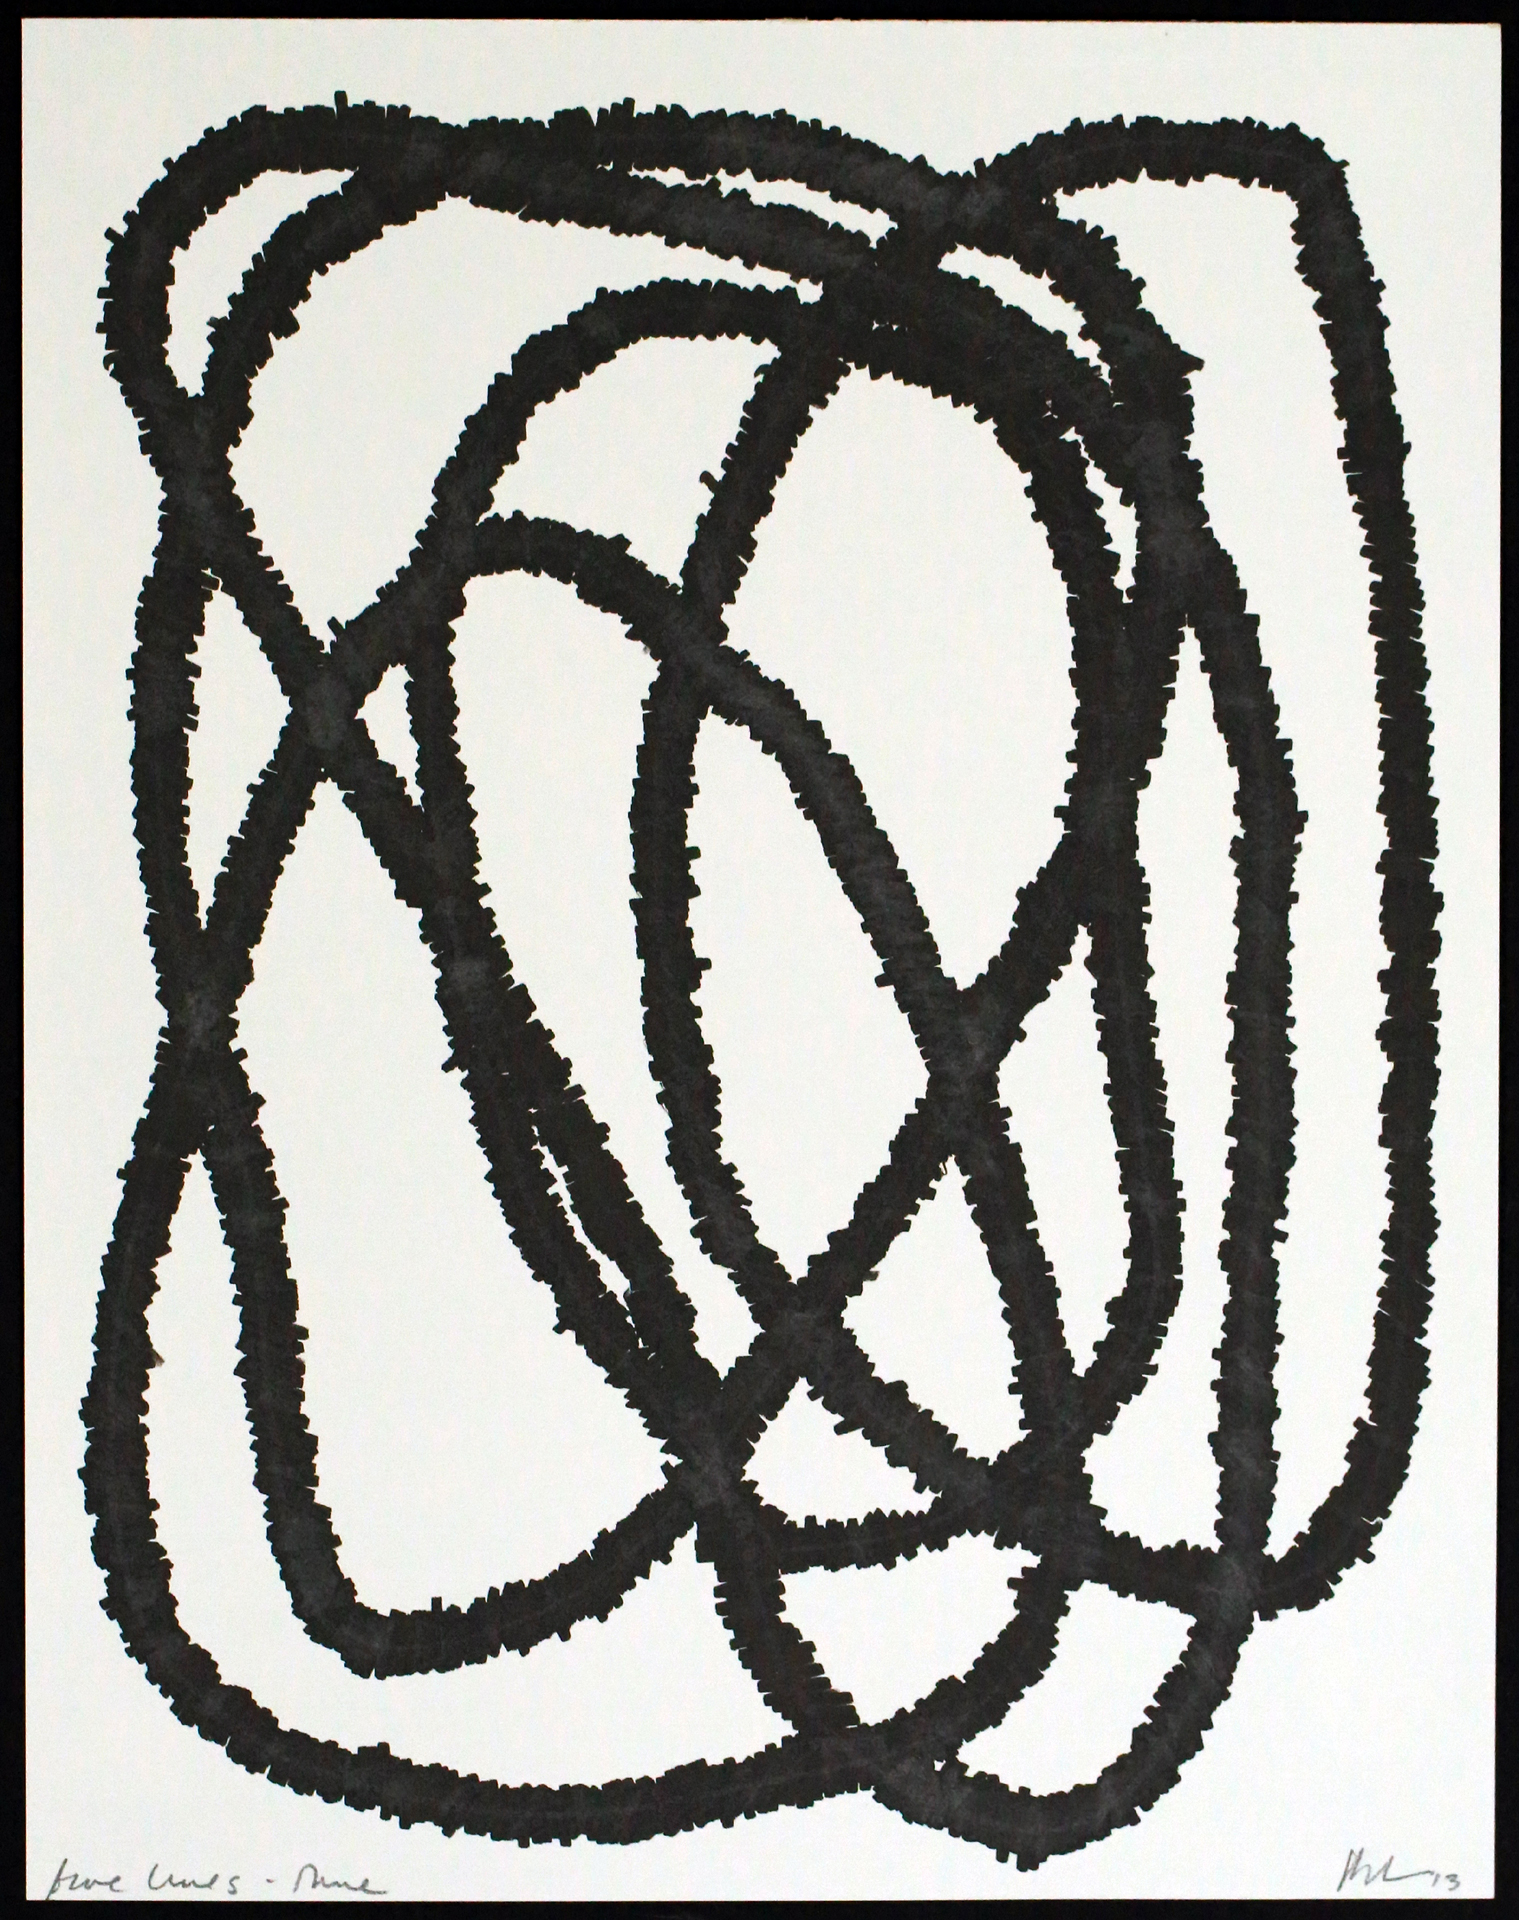 five-lines-three-2013-pigmented-ink-on-rag-paper-14-in-h-x-11-in-w-mcc